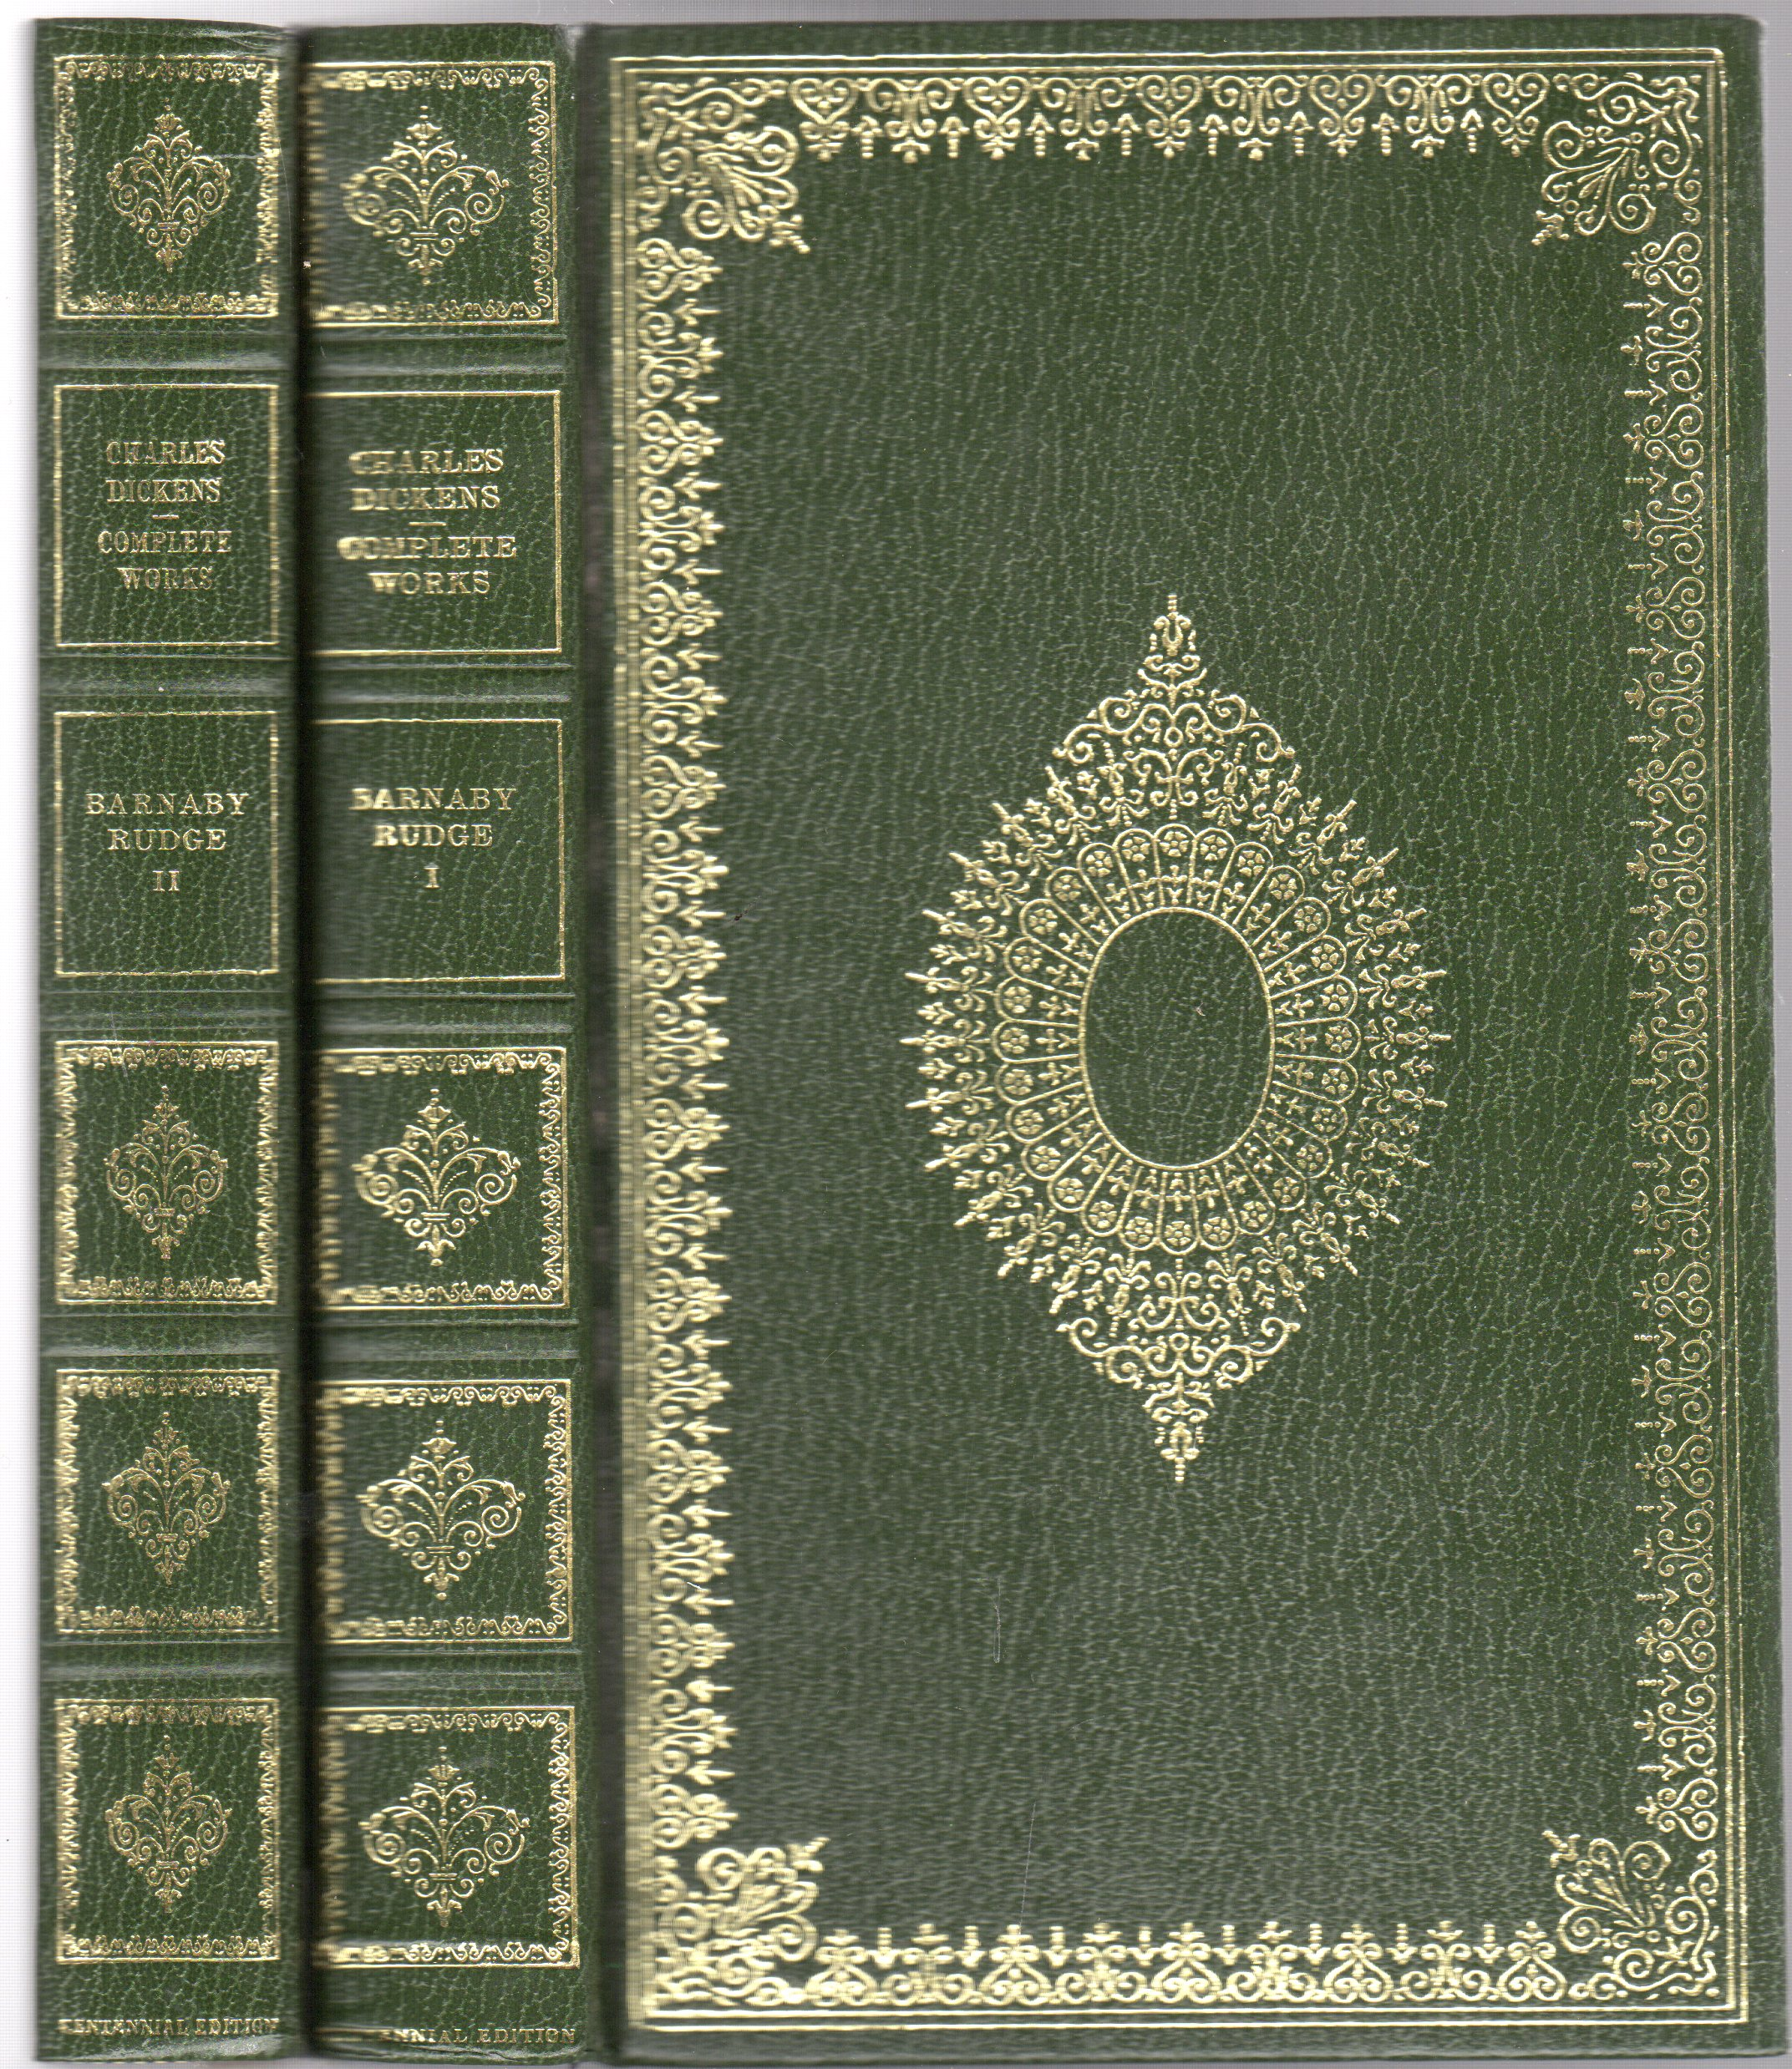 Image for Barnaby Rudge (2 vols)